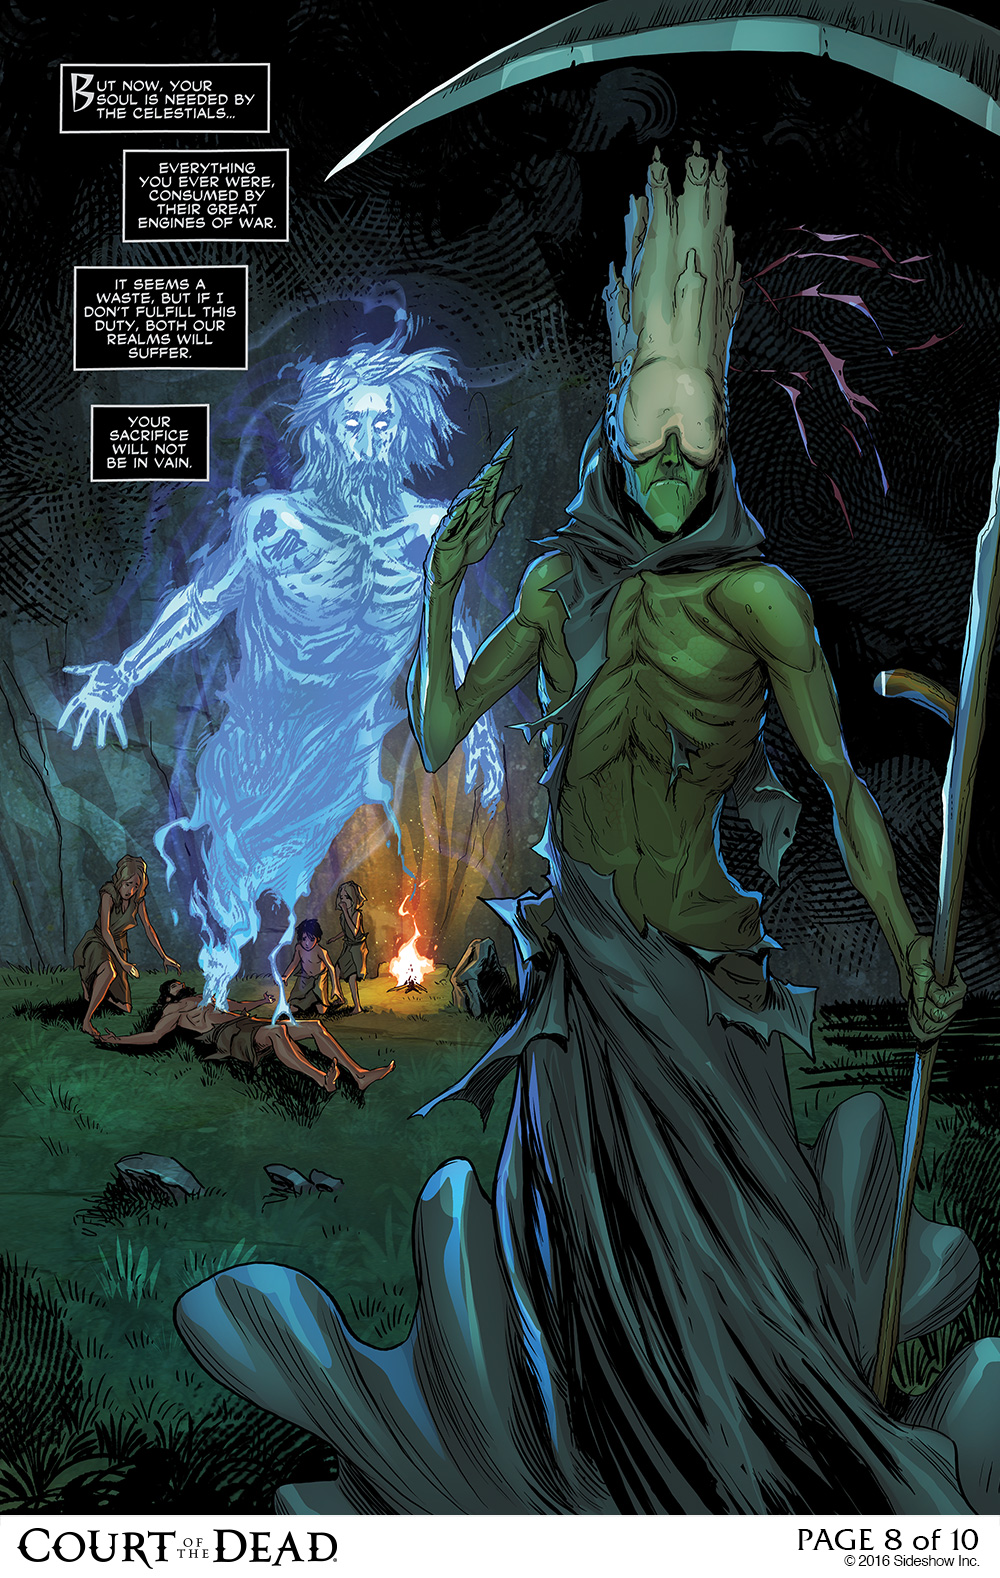 Death's Plans Revealed in Our Final Court of the Dead Comic Preview